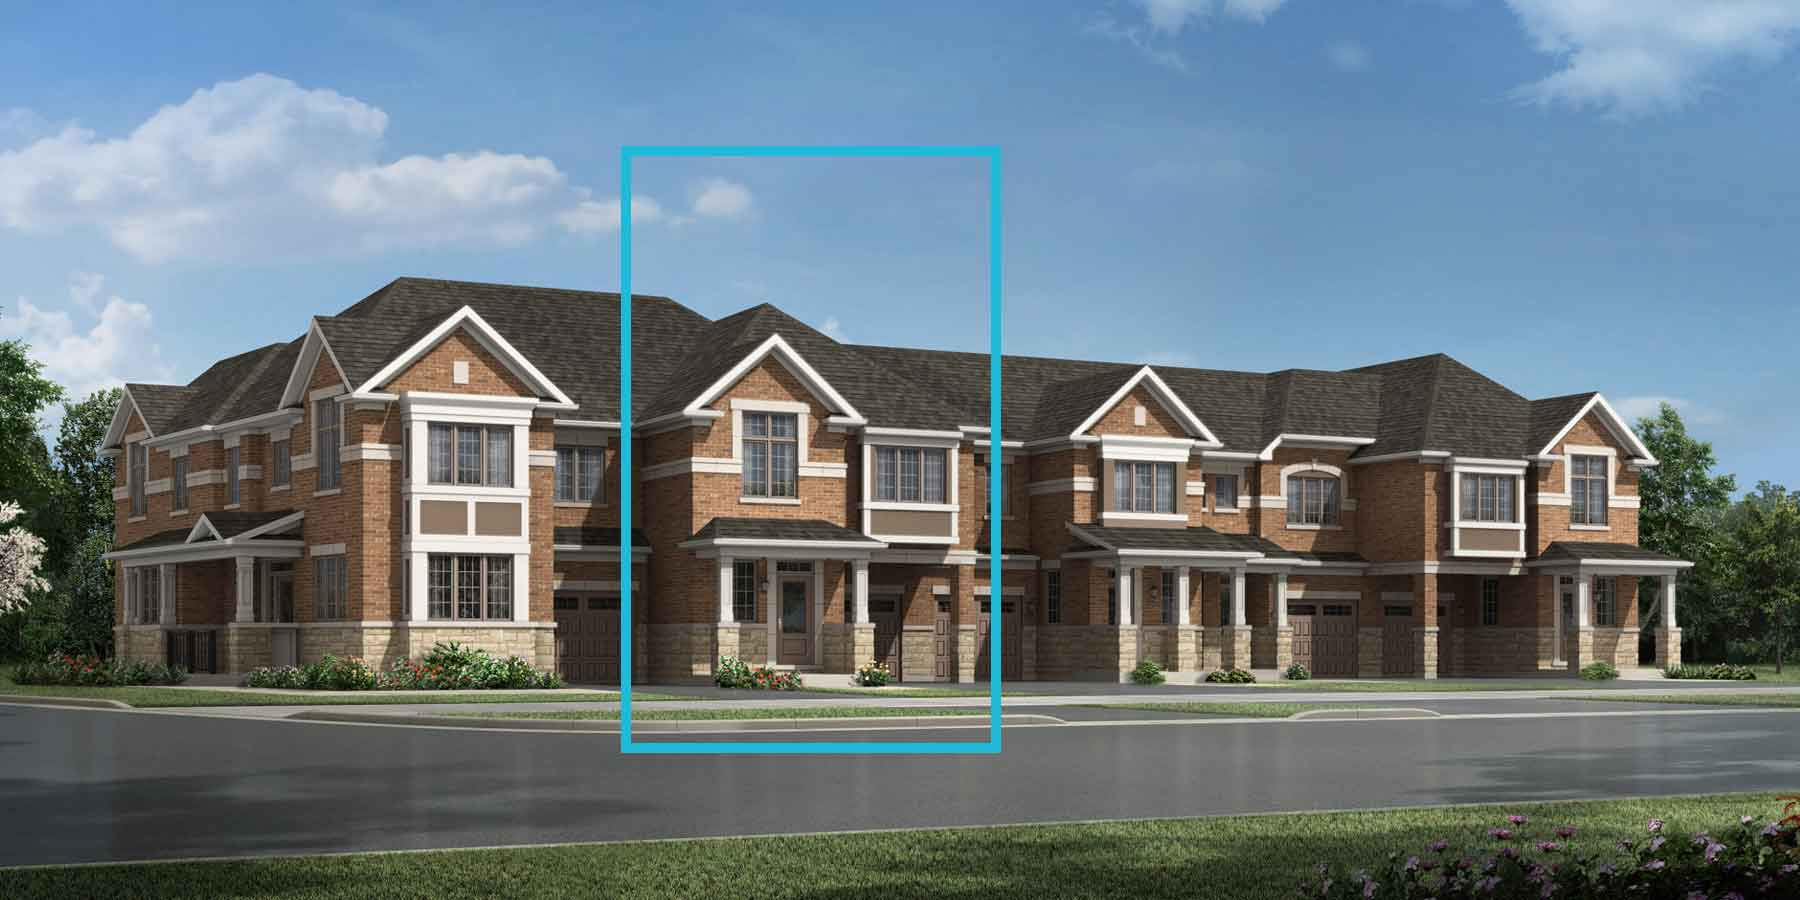 Pinegrove Plan TownHomes at Seaton Whitevale in Pickering Ontario by Mattamy Homes